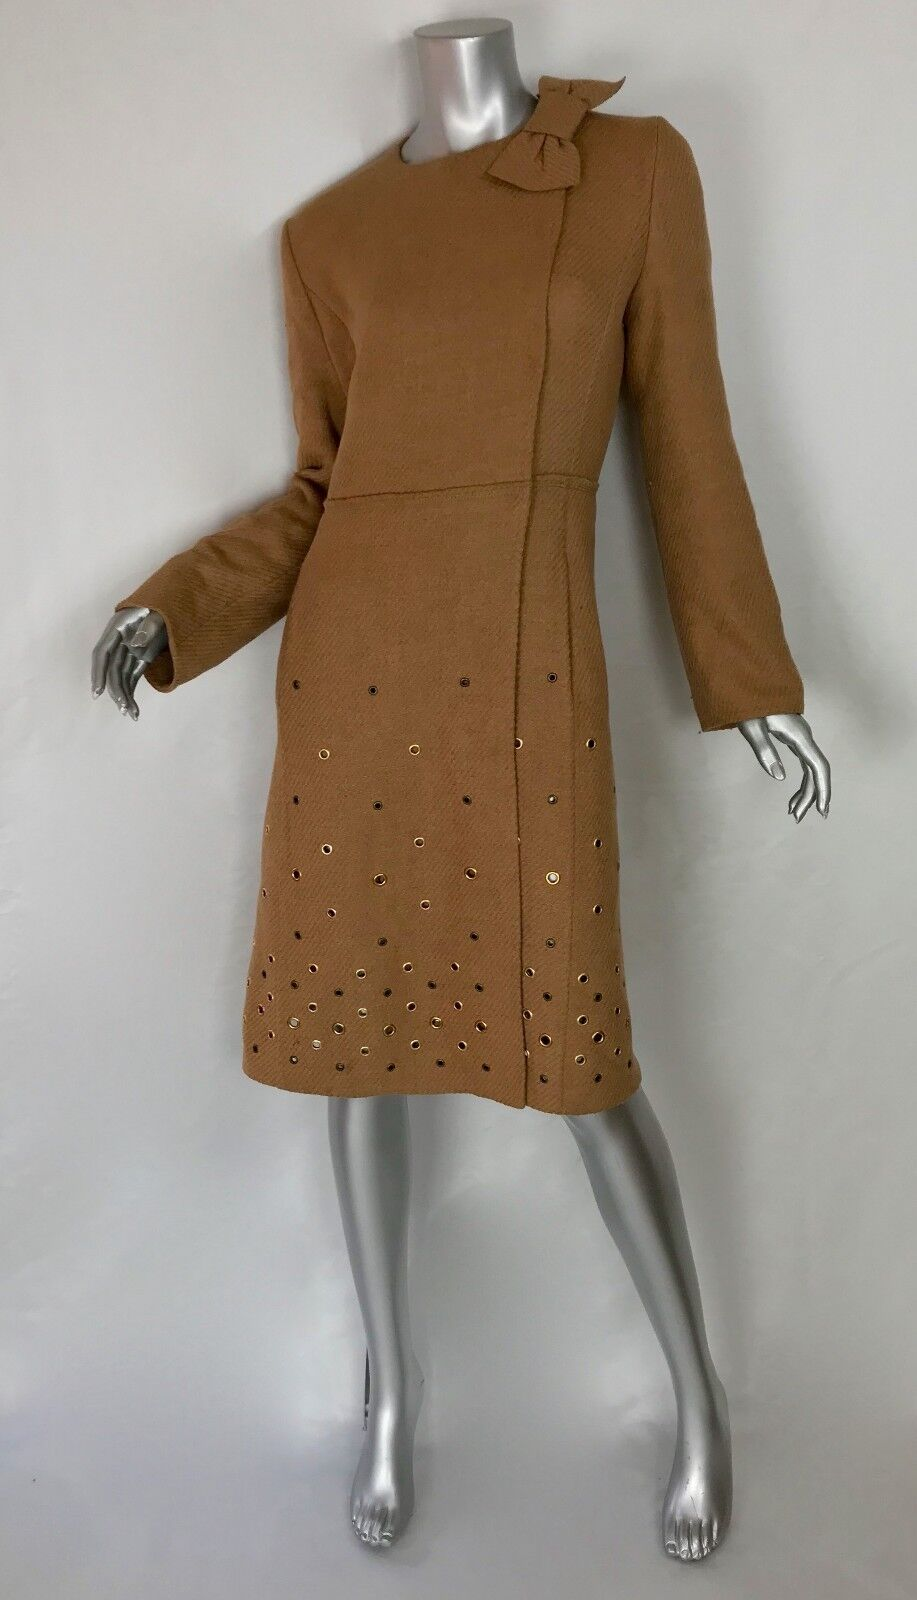 Prada 3 4 length 100% wool camel coat bow button closure metal detail Sz44 Sz10